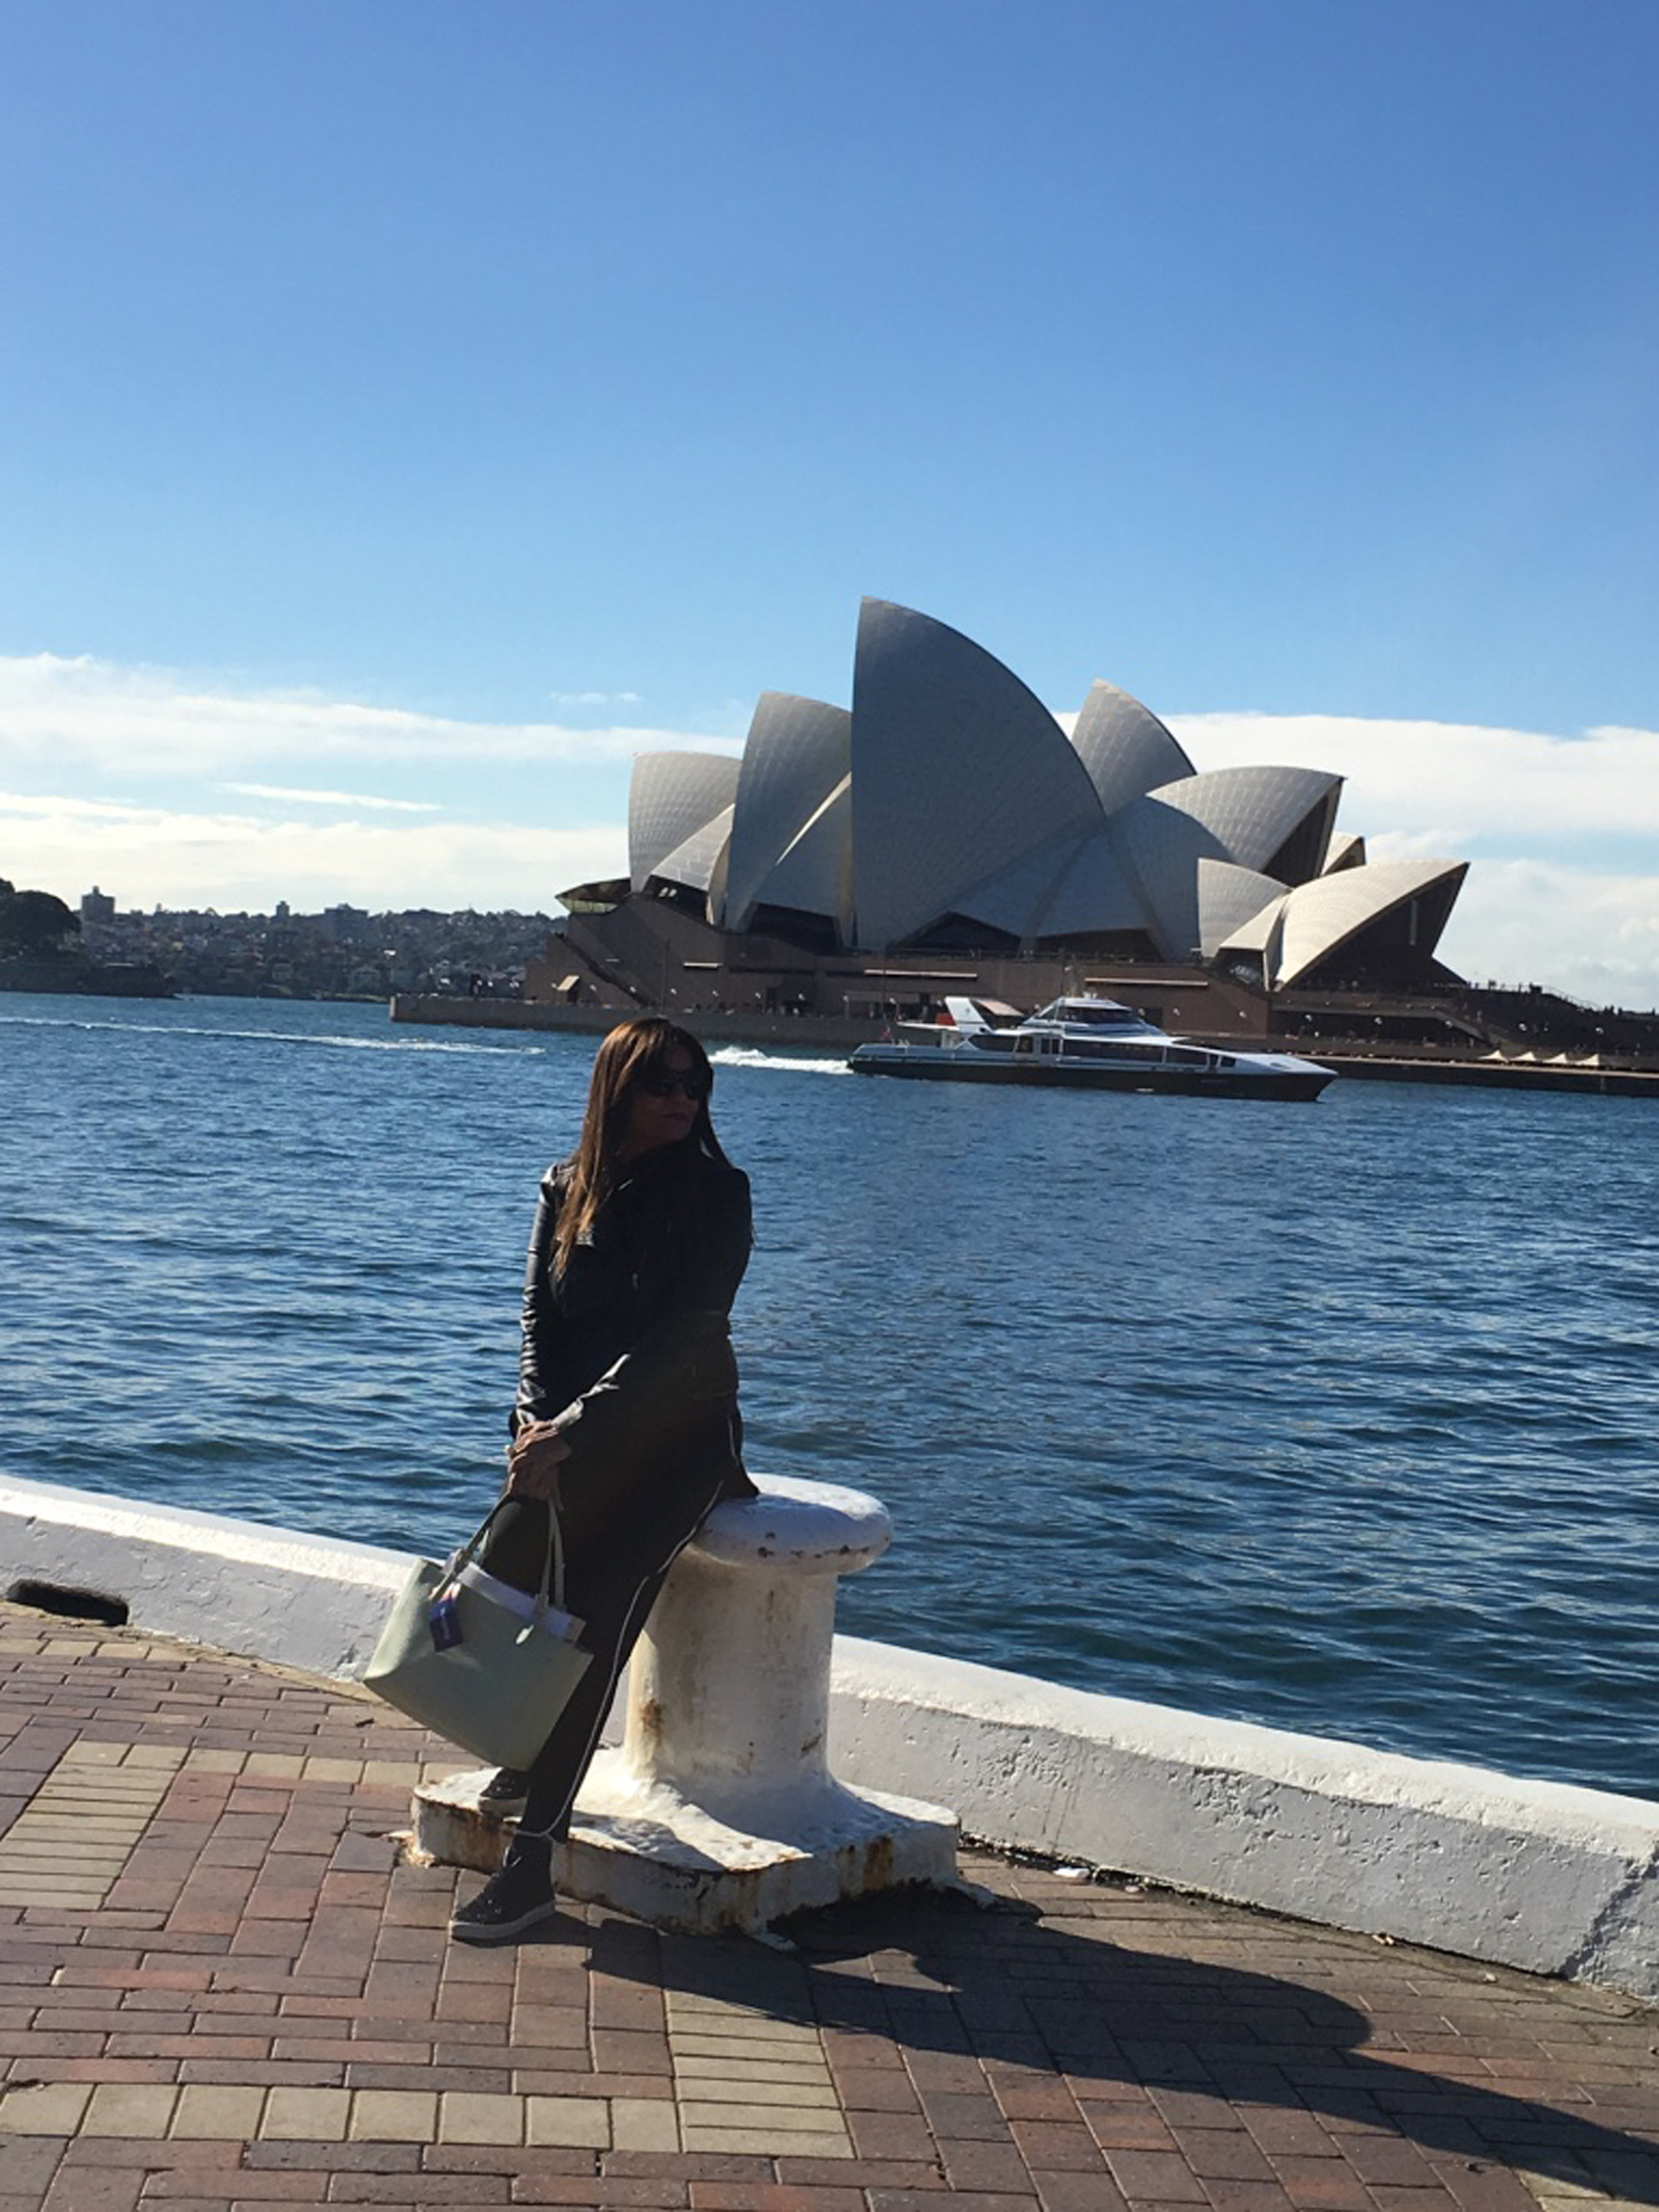 Queen of K in posing in front of Sydney Opera House